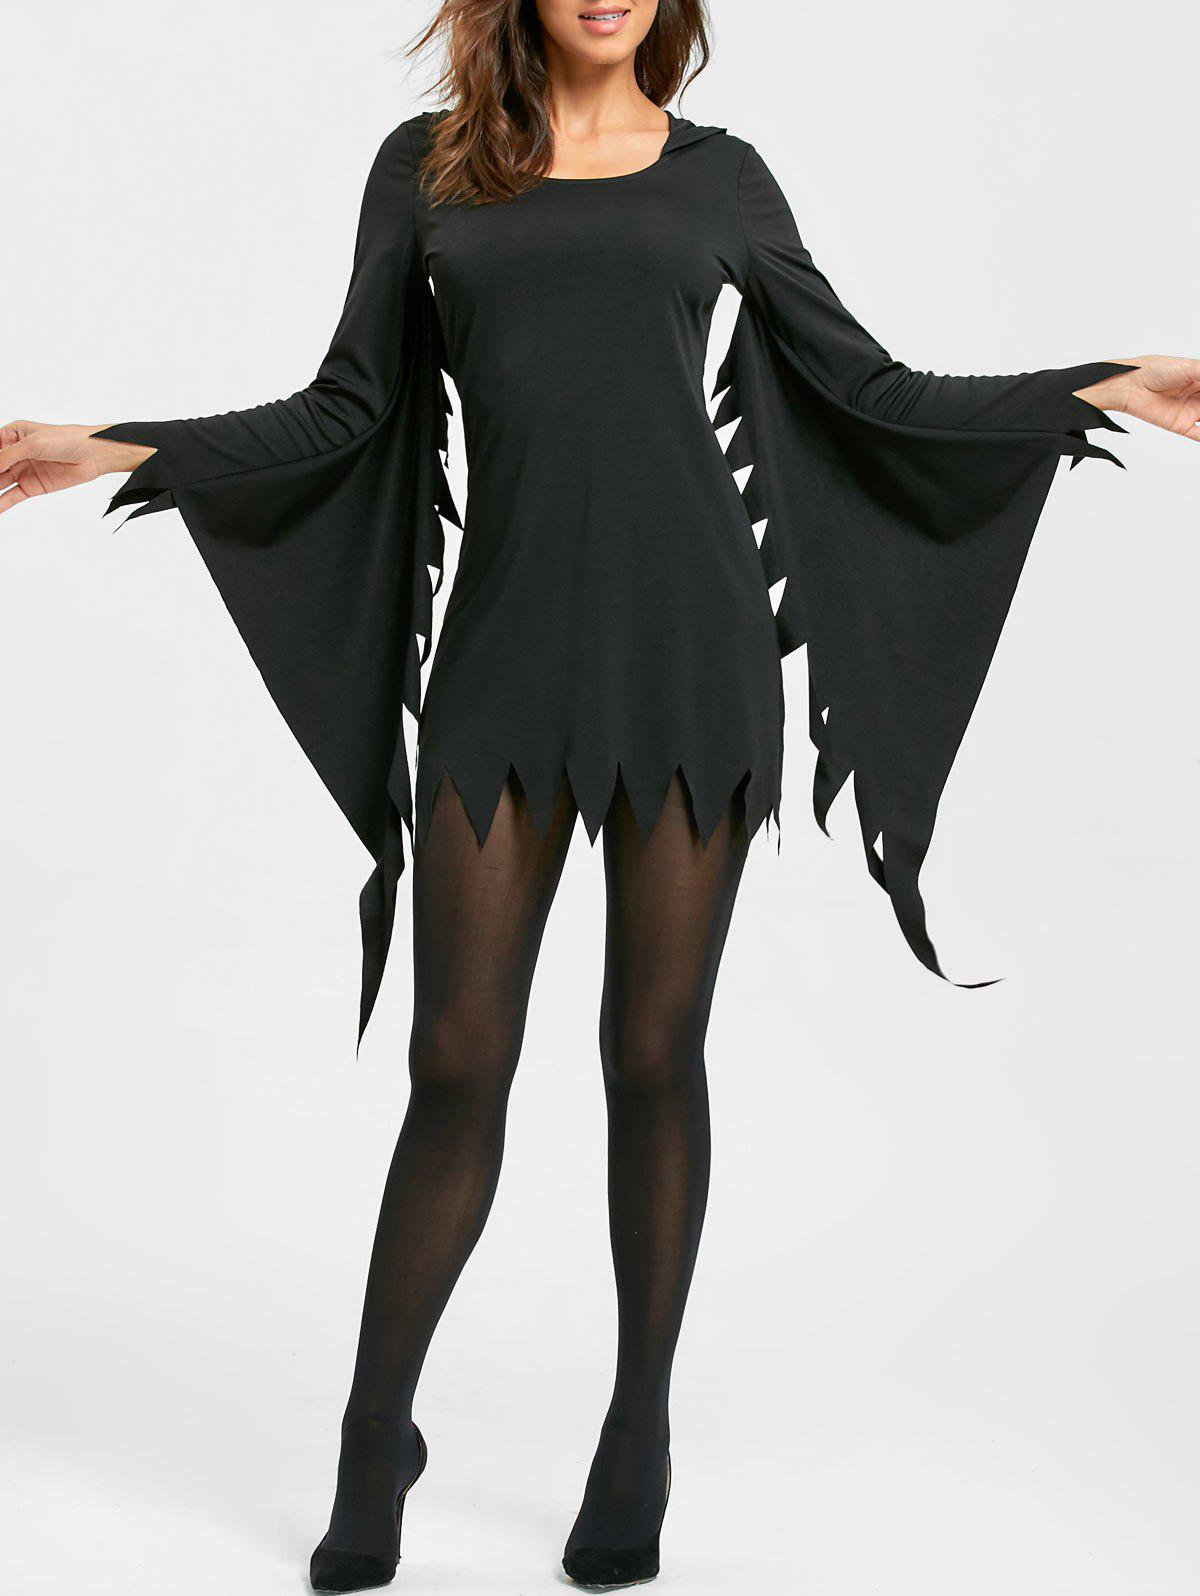 Chic Halloween Serrated Edge Mini Hooded Dress